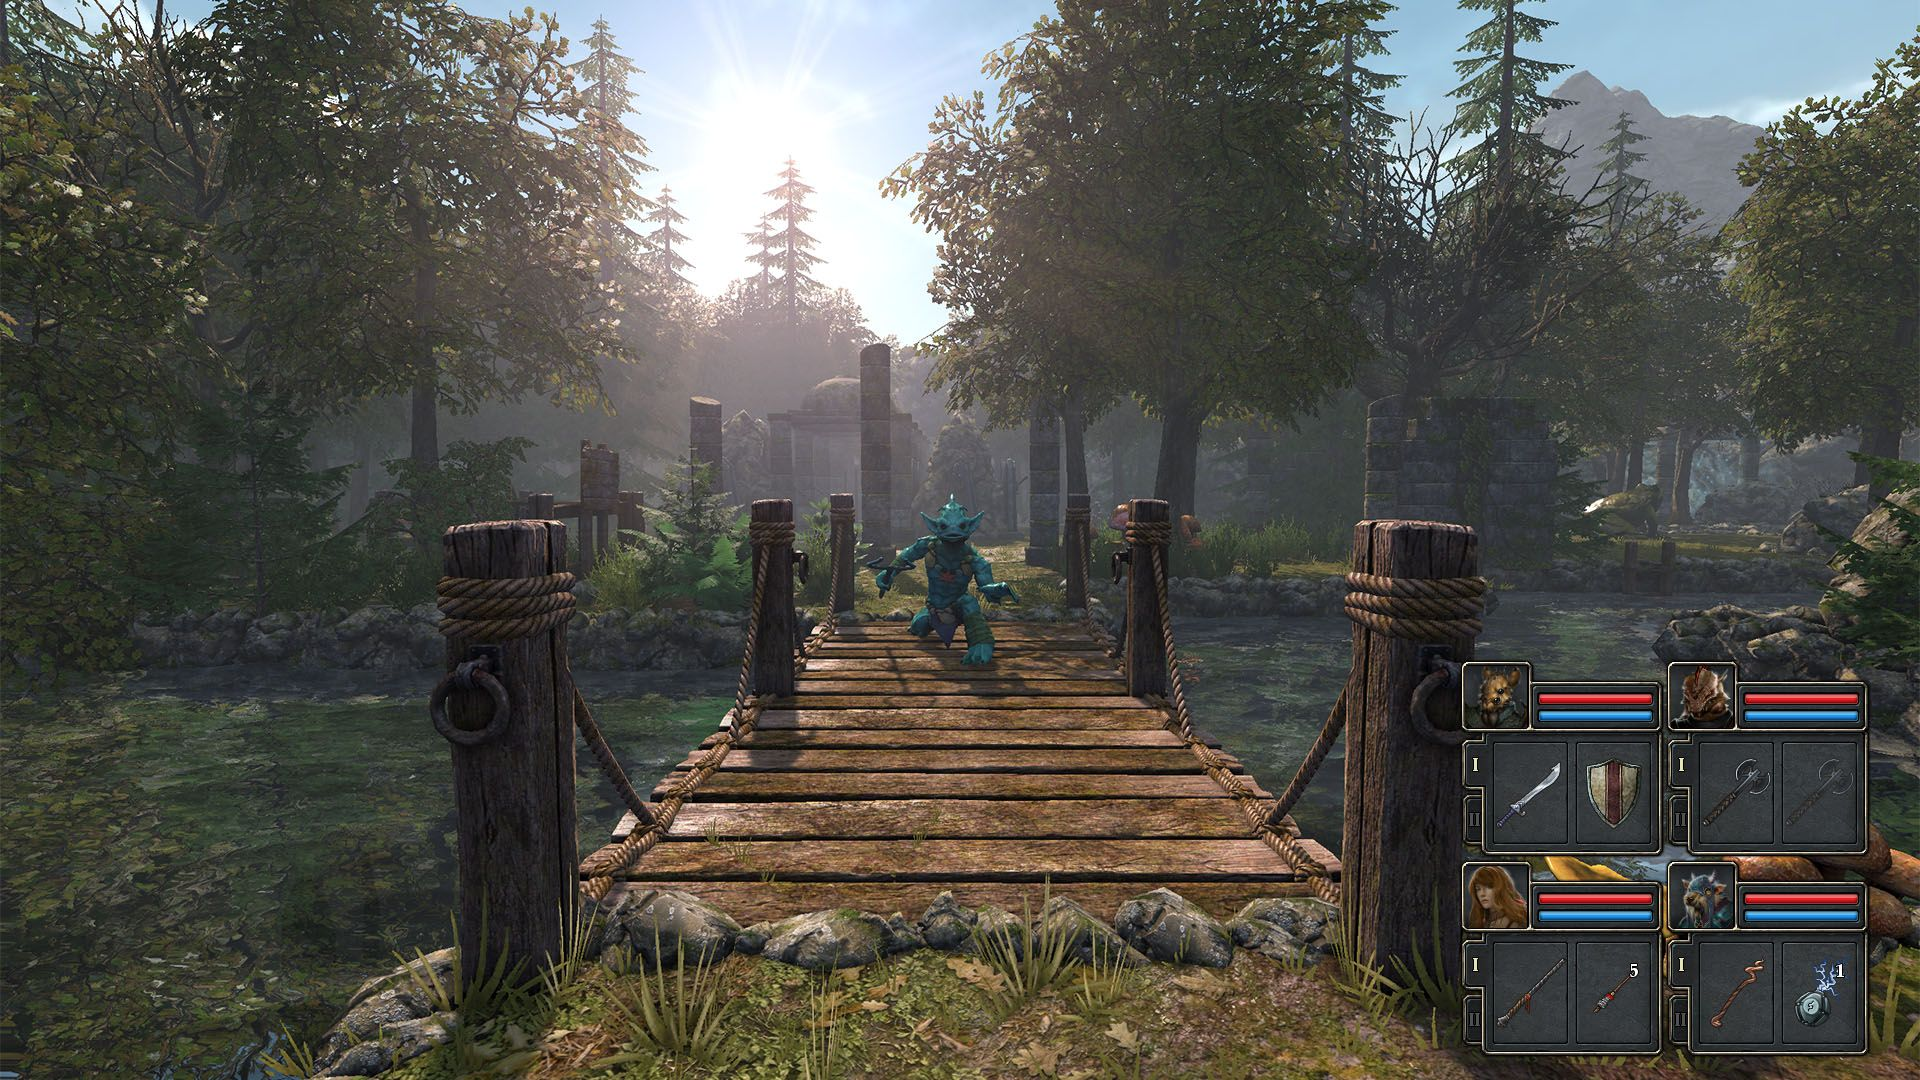 A screenshot showing a monster coming toward you on a bridge in Legend Of Grimrock 2.